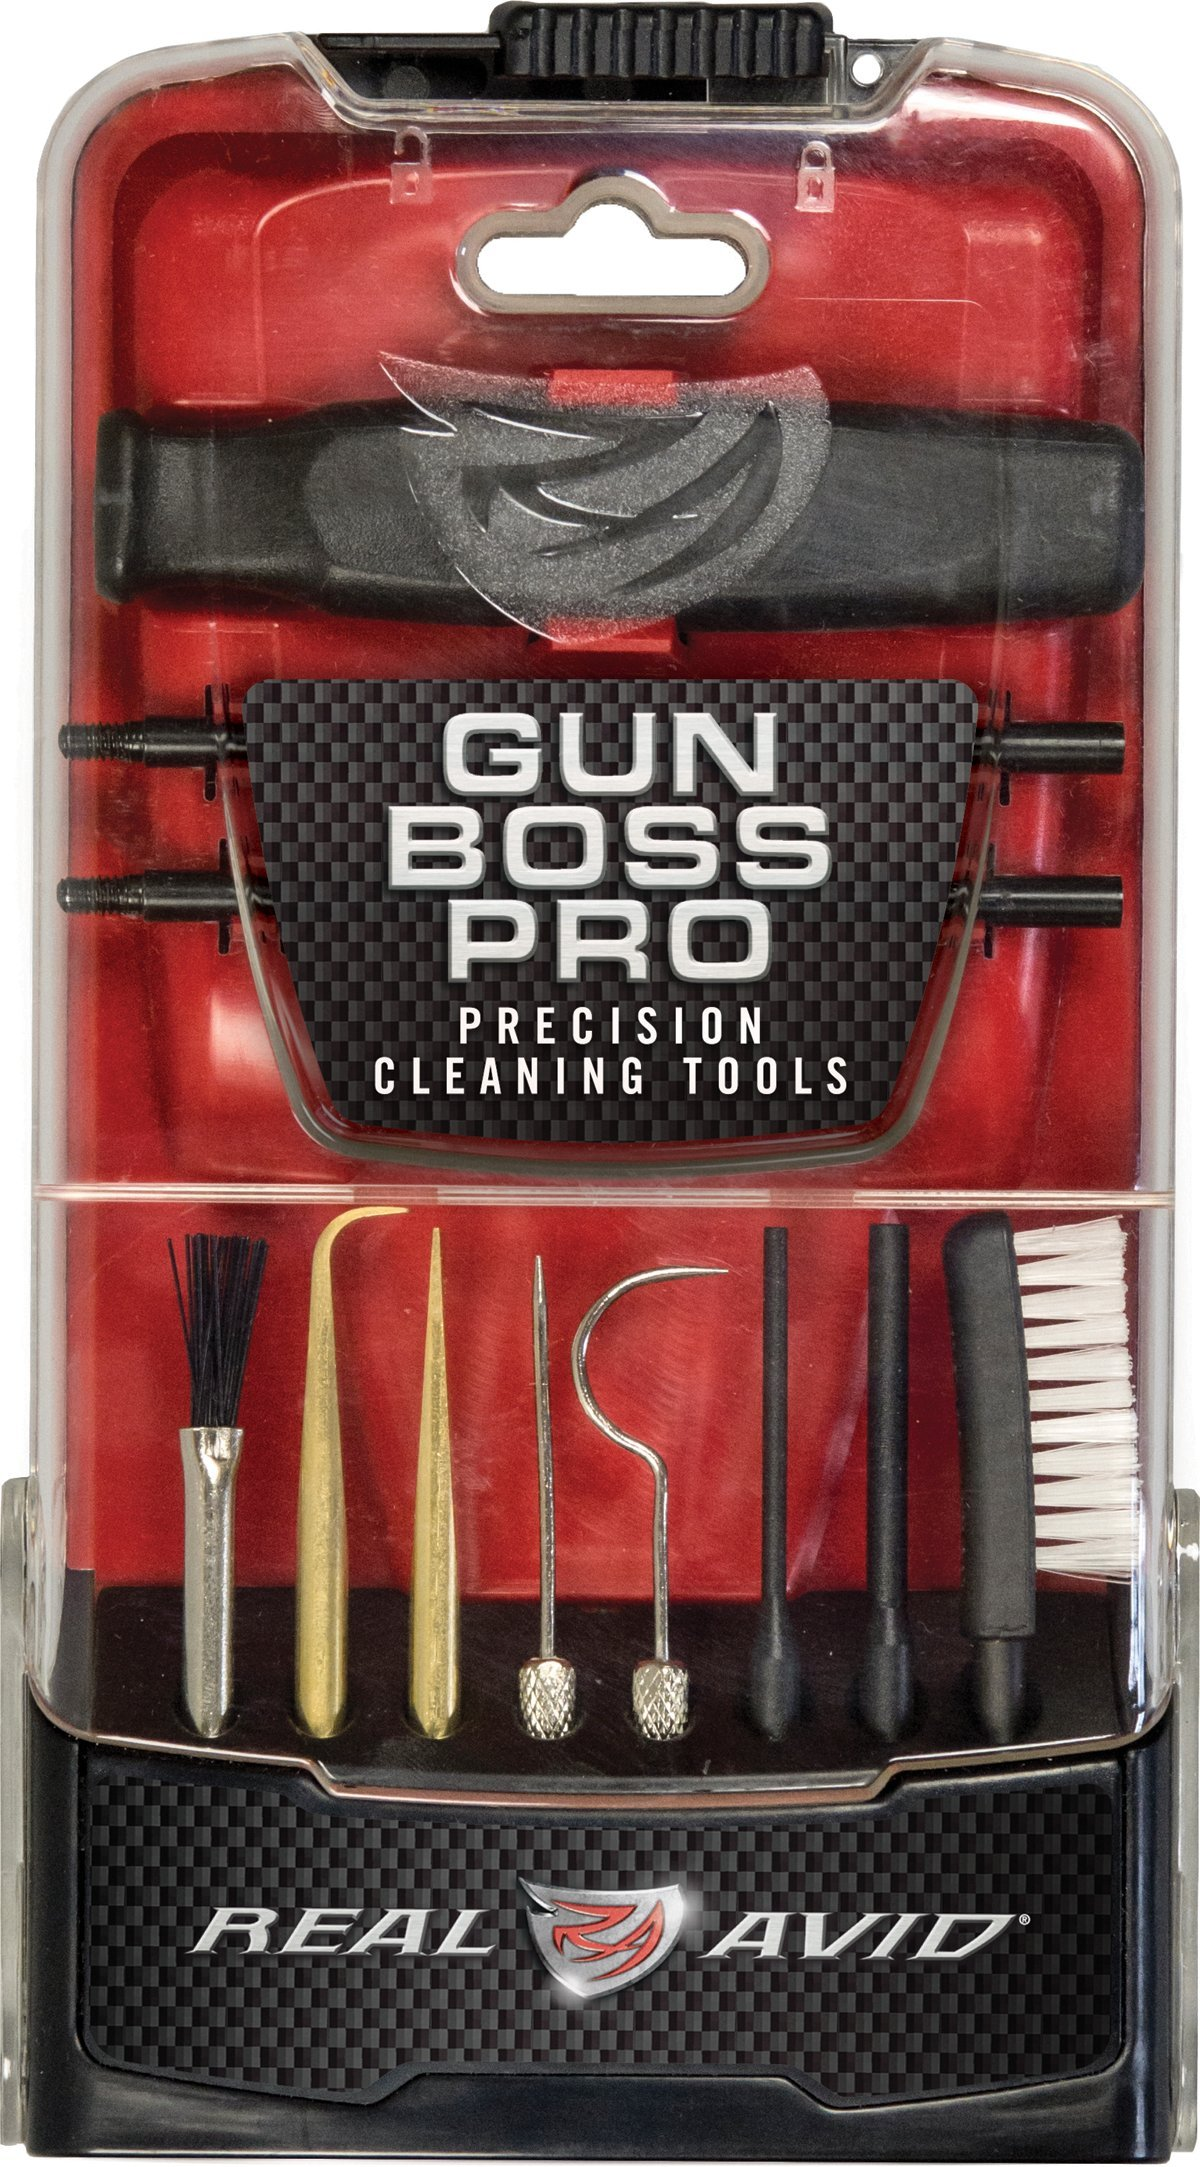 Real Avid Gun Boss Pro Precision Cleaning Kit - $19 99 (Free S/H over $25)